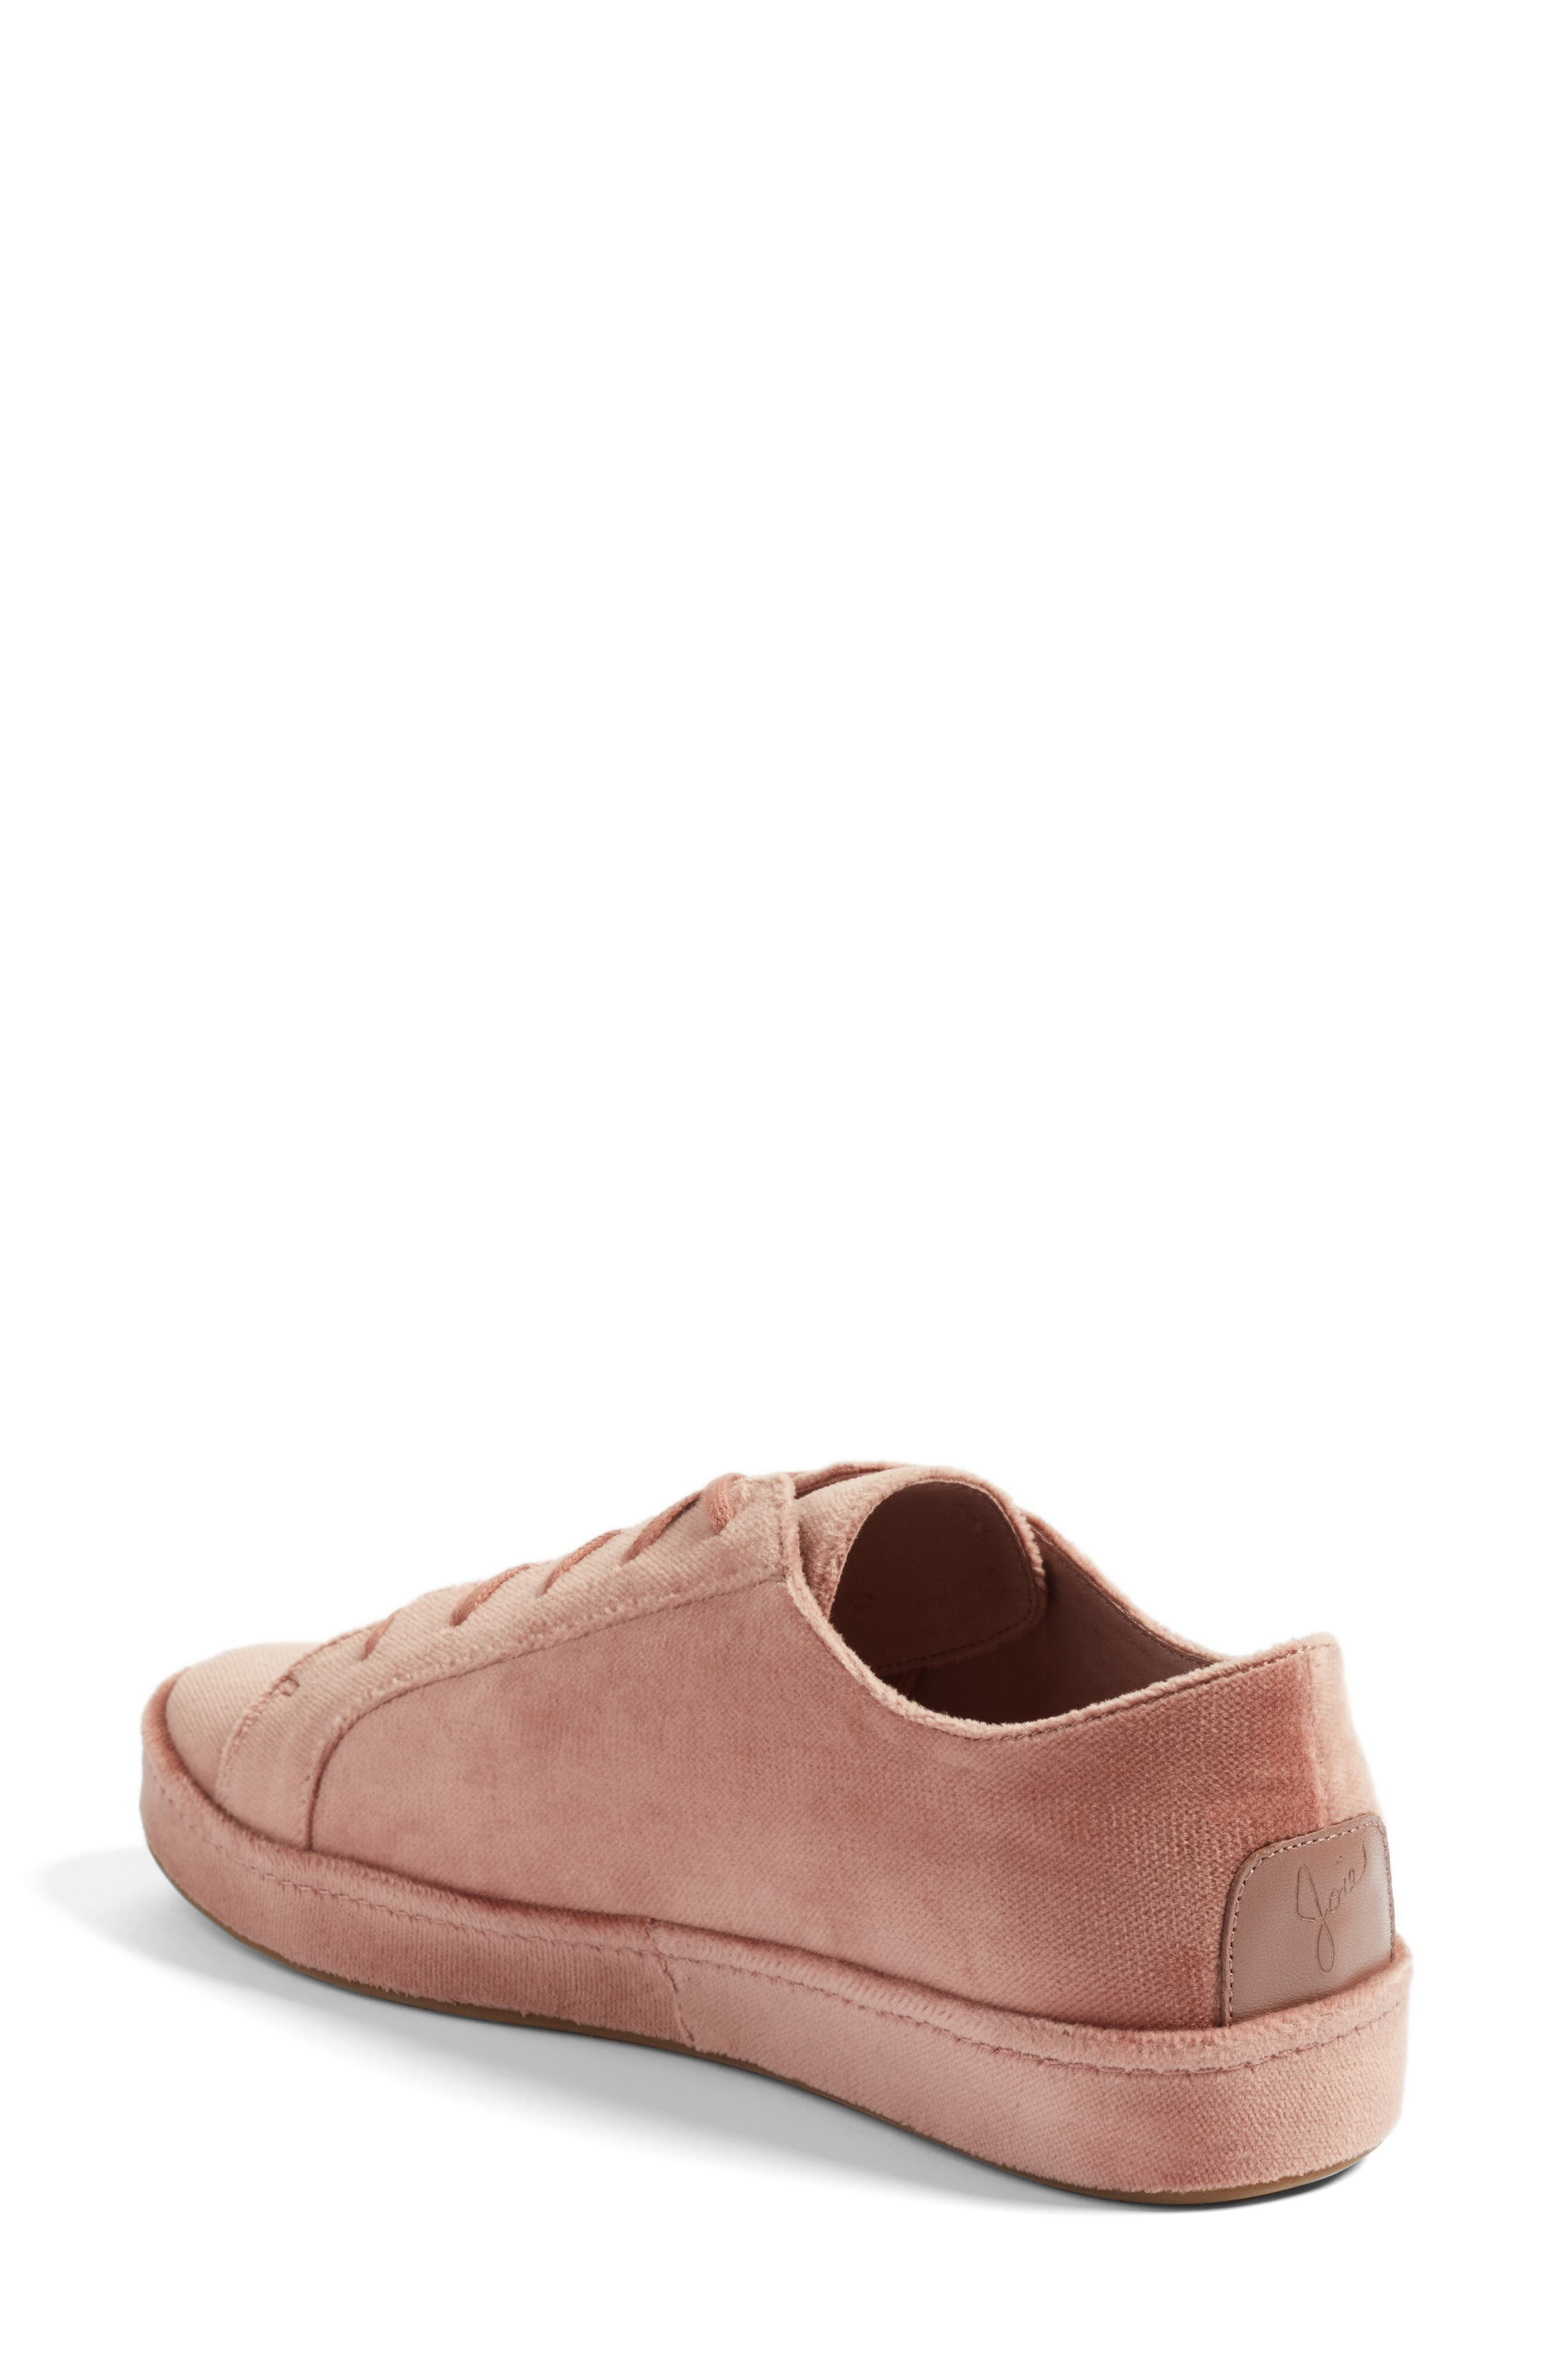 Daryl Low Top Sneaker,                             Alternate thumbnail 2, color,                             Light Mauve